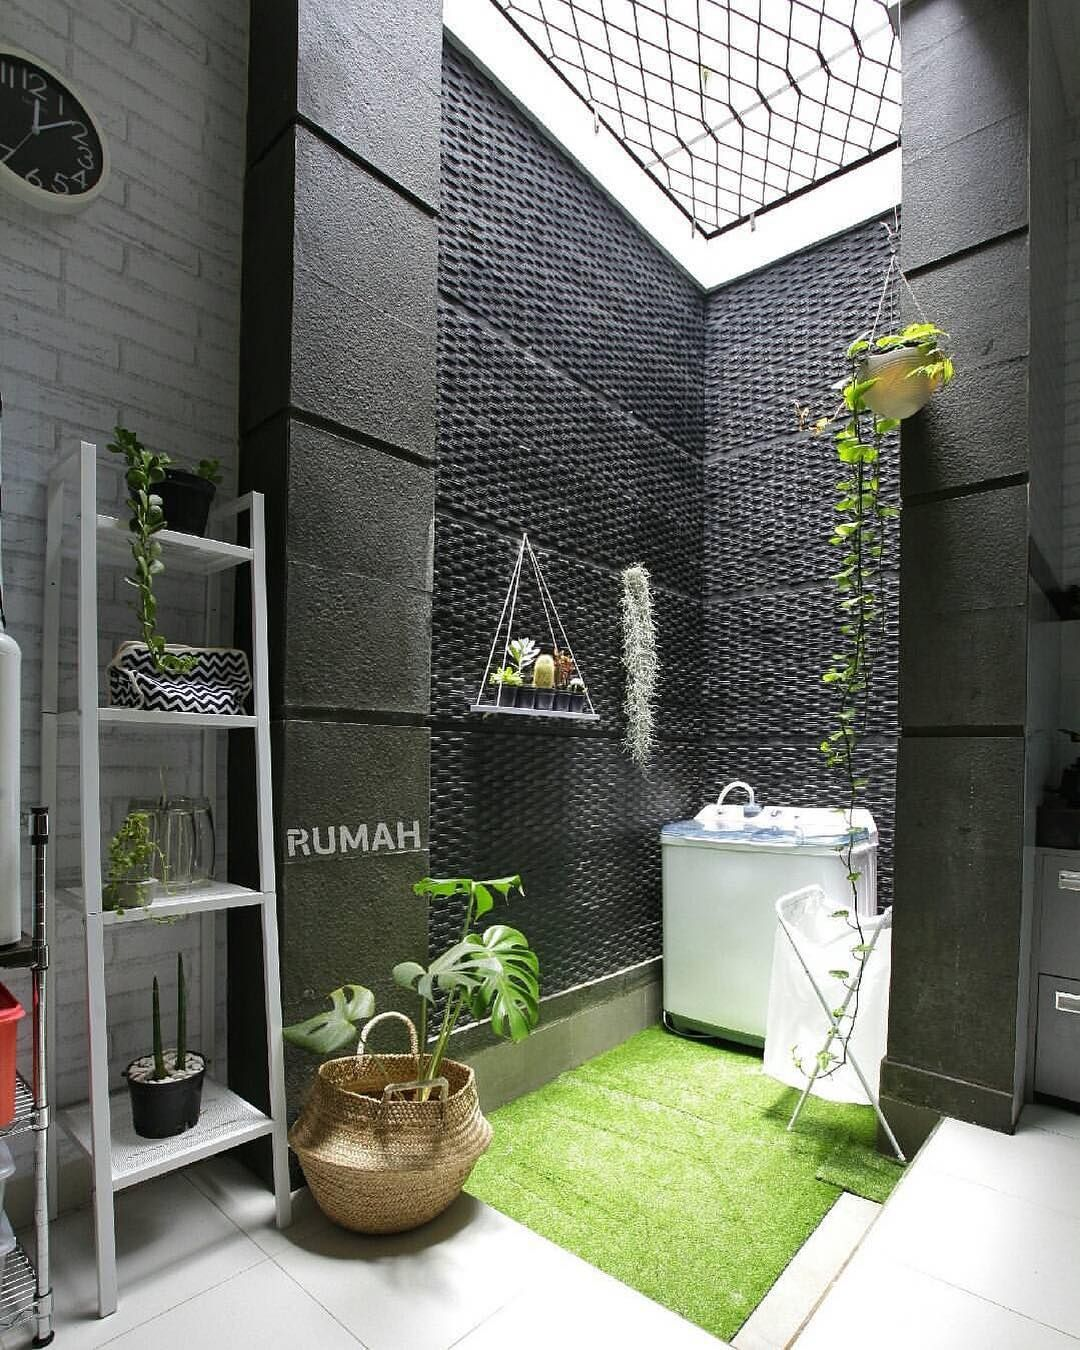 Ruang Laundry Minimalis Pin By Claera Santy On Home Decor Deko Haus Design